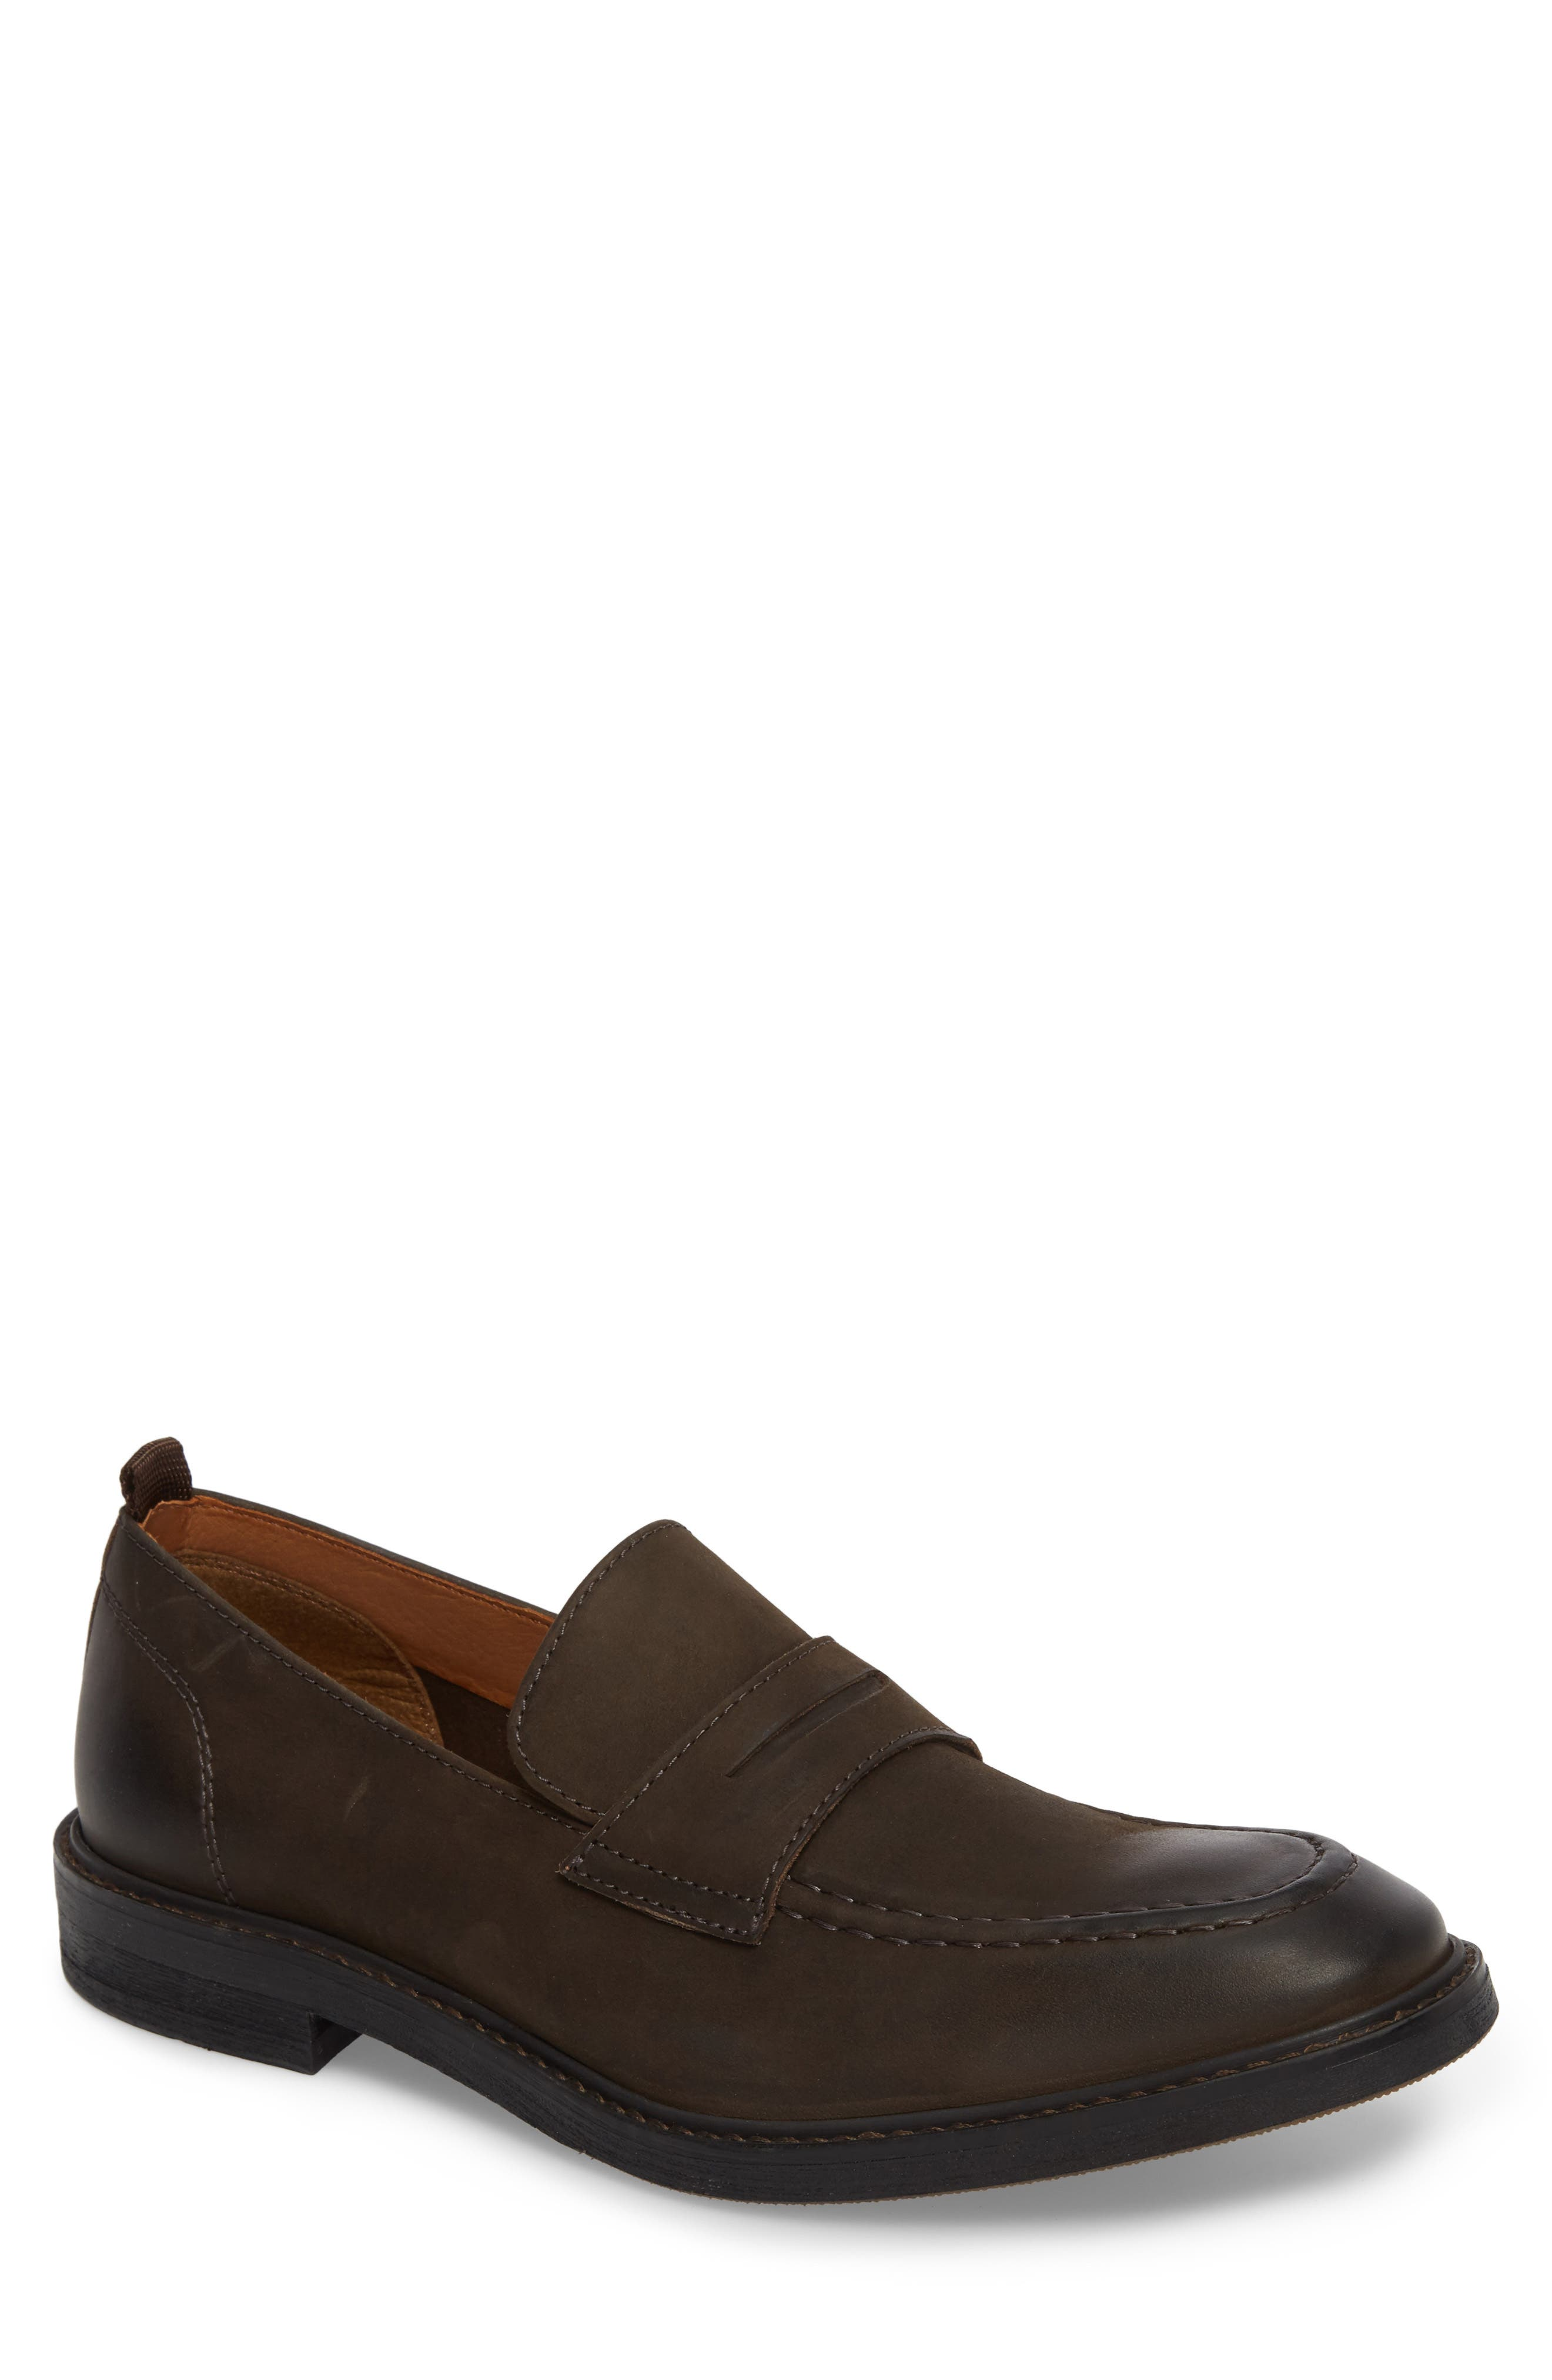 Harrington Penny Loafer,                         Main,                         color, 200